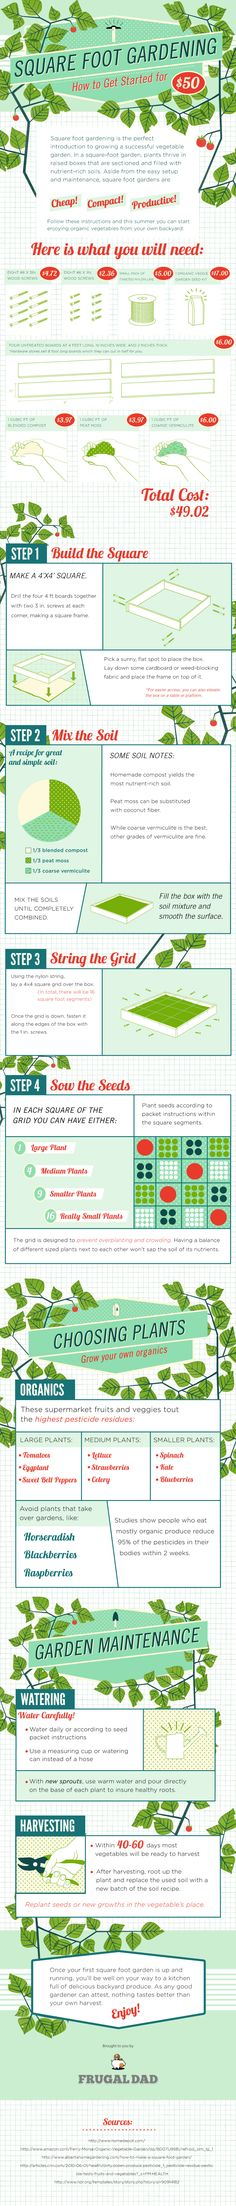 More square foot gardening tips